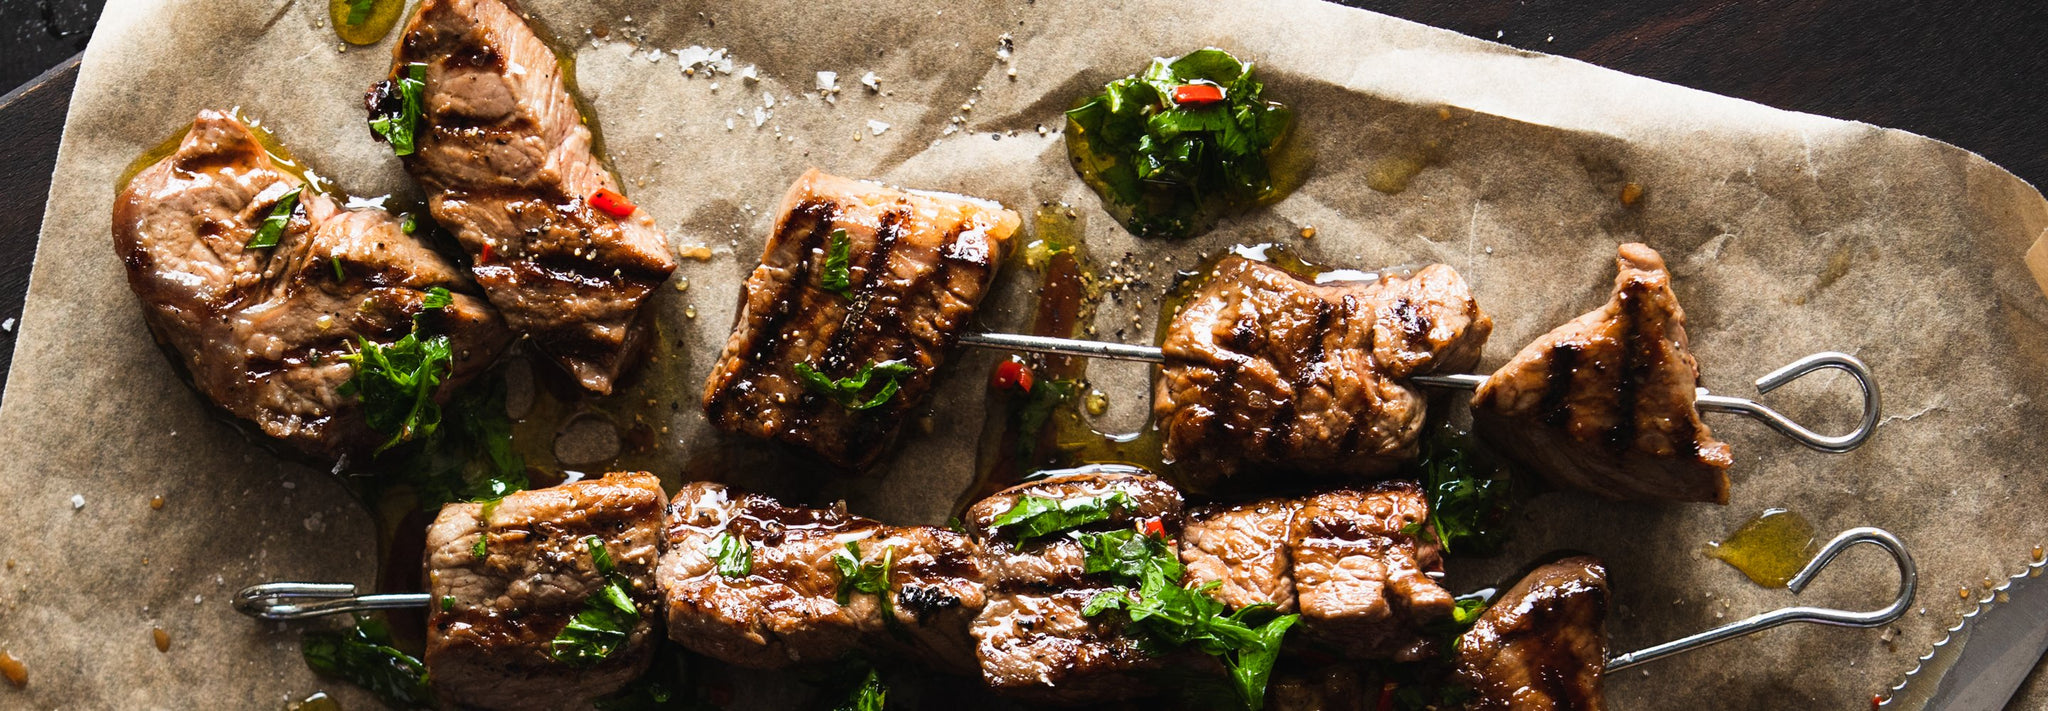 Rump Beef Skewers with Chimichurri